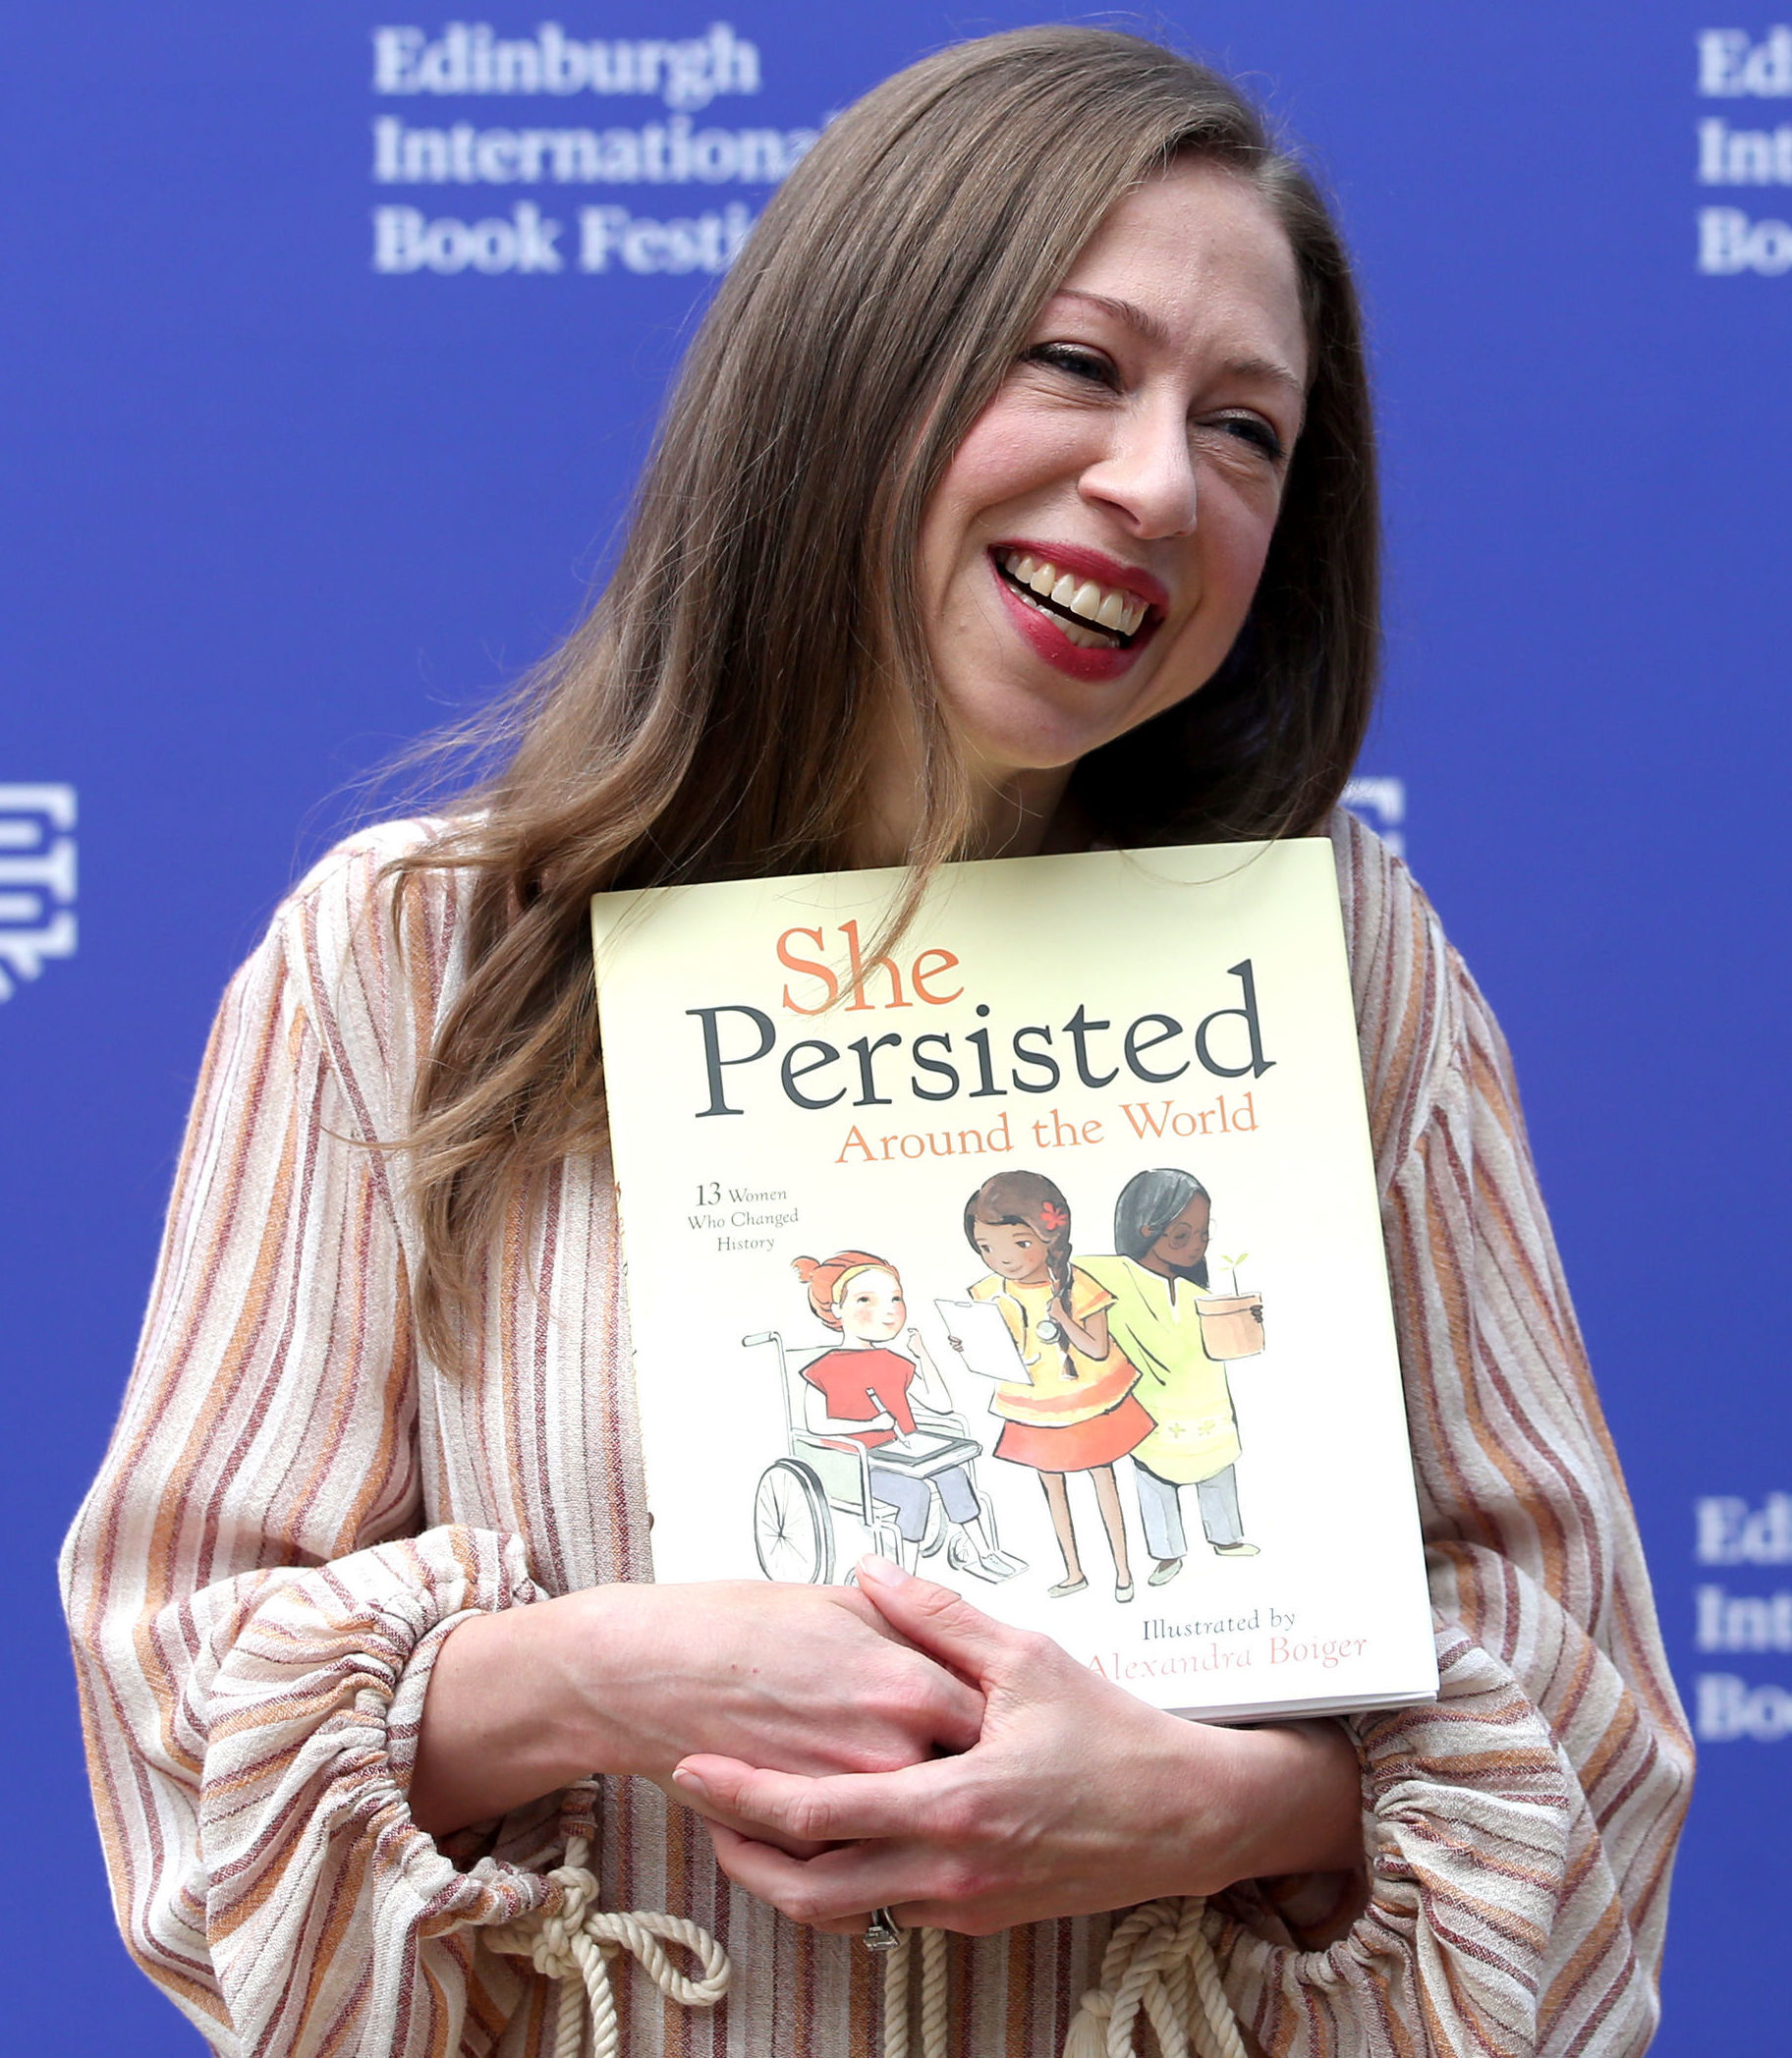 American advocate and author Chelsea Clinton during a photocall at the Edinburgh International Book Festival in Charlotte Square Gardens, Edinburgh. PRESS ASSOCIATION Photo. Picture date: Monday August 20, 2018. Photo credit should read: Jane Barlow/PA Wi